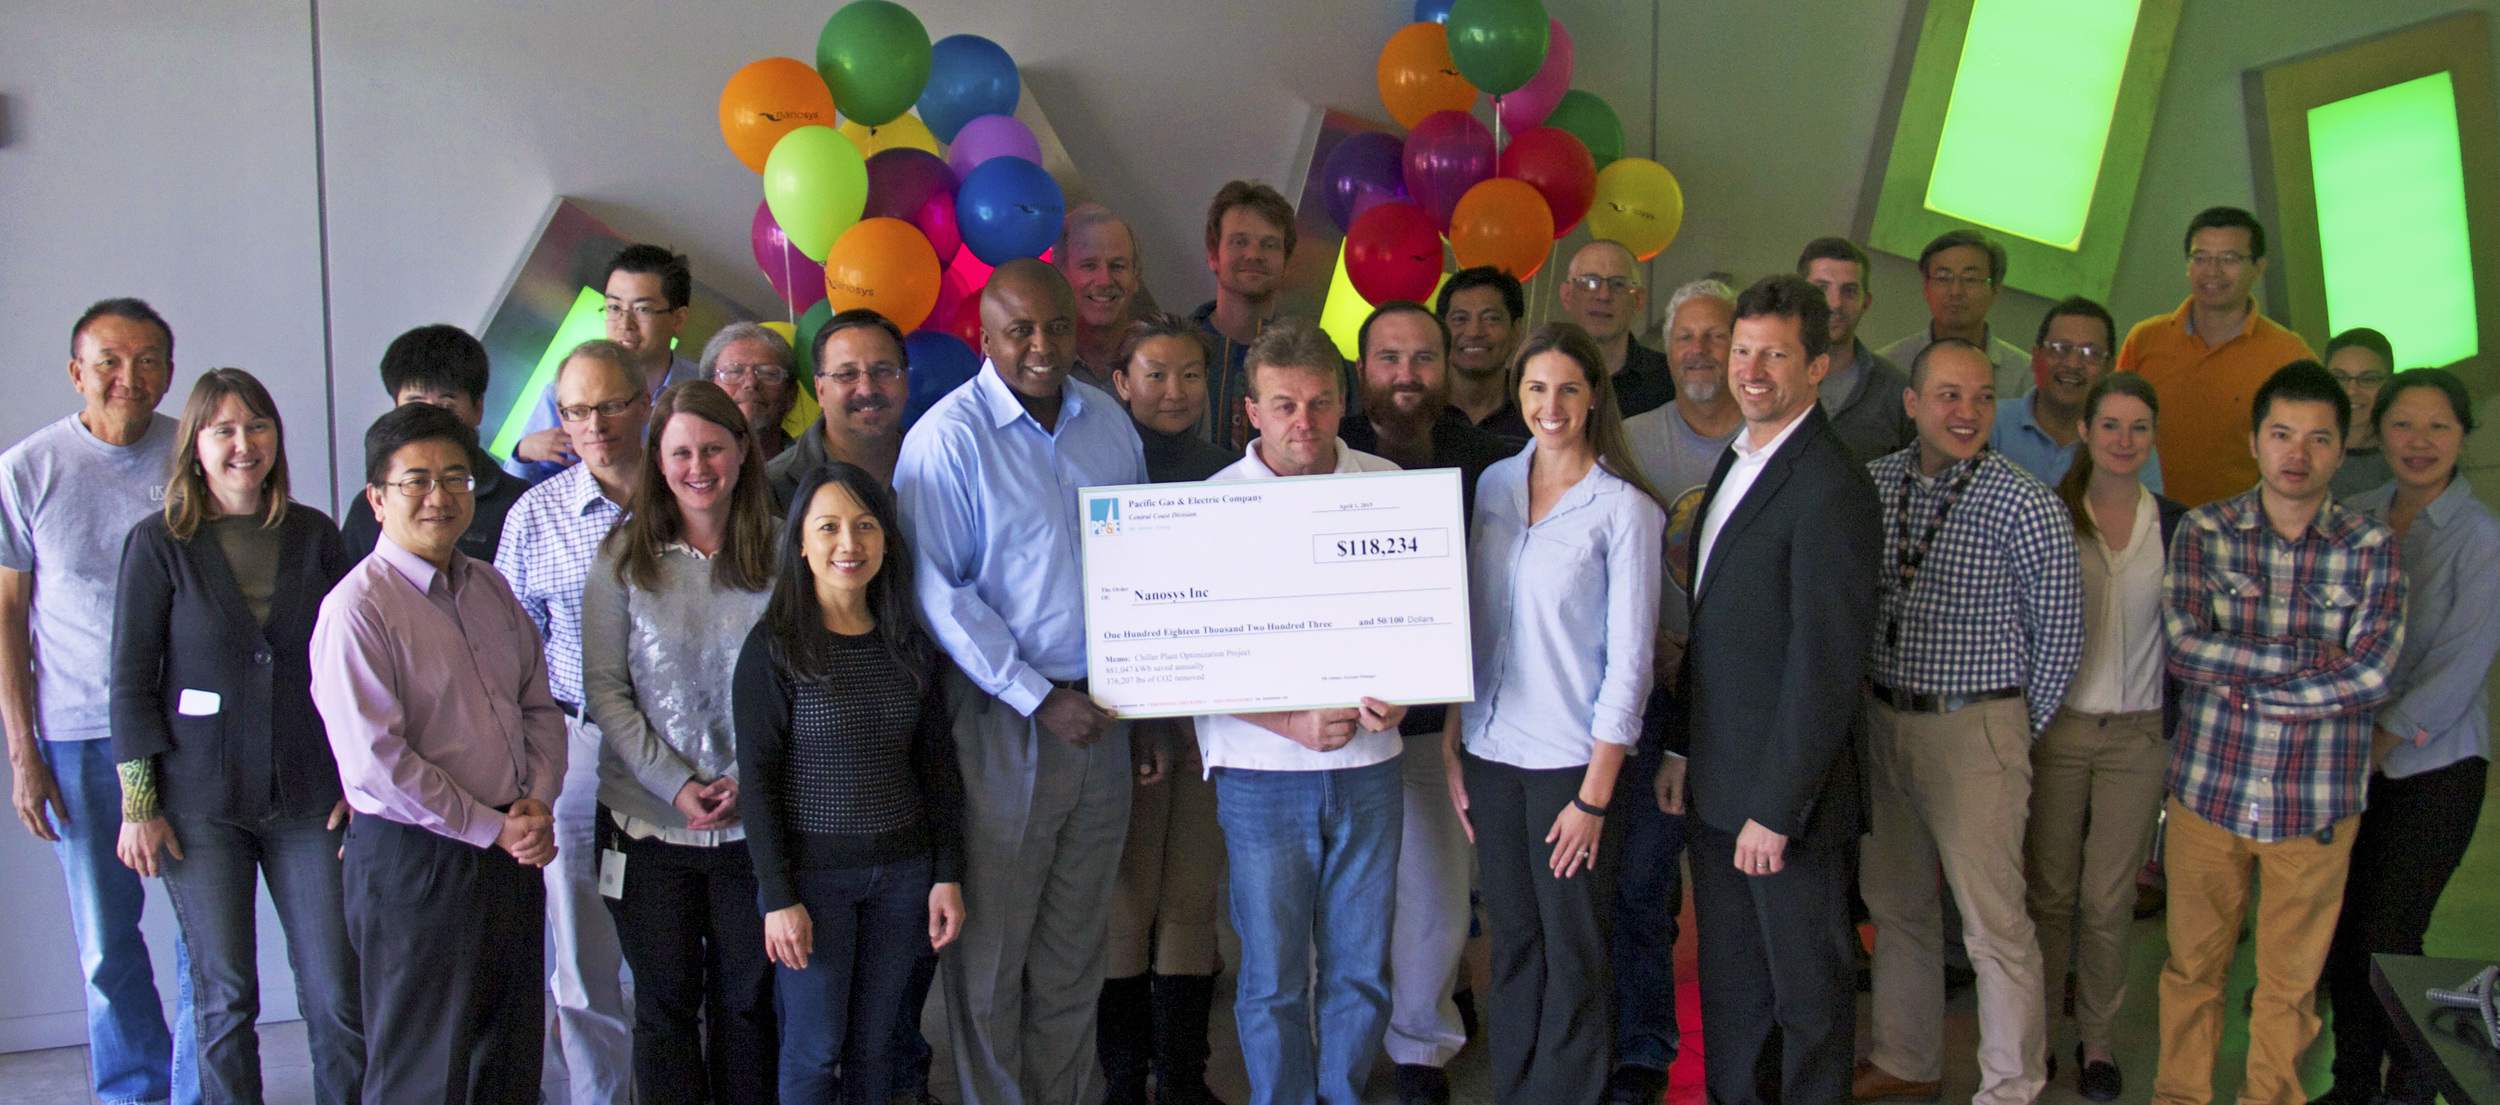 PG&E representative Jill Adams presenting the Energy Efficiency Program incentive check to the team at Nanosys for energy savings of over 800,000 kWh at the company's Milpitas, CA headquarters